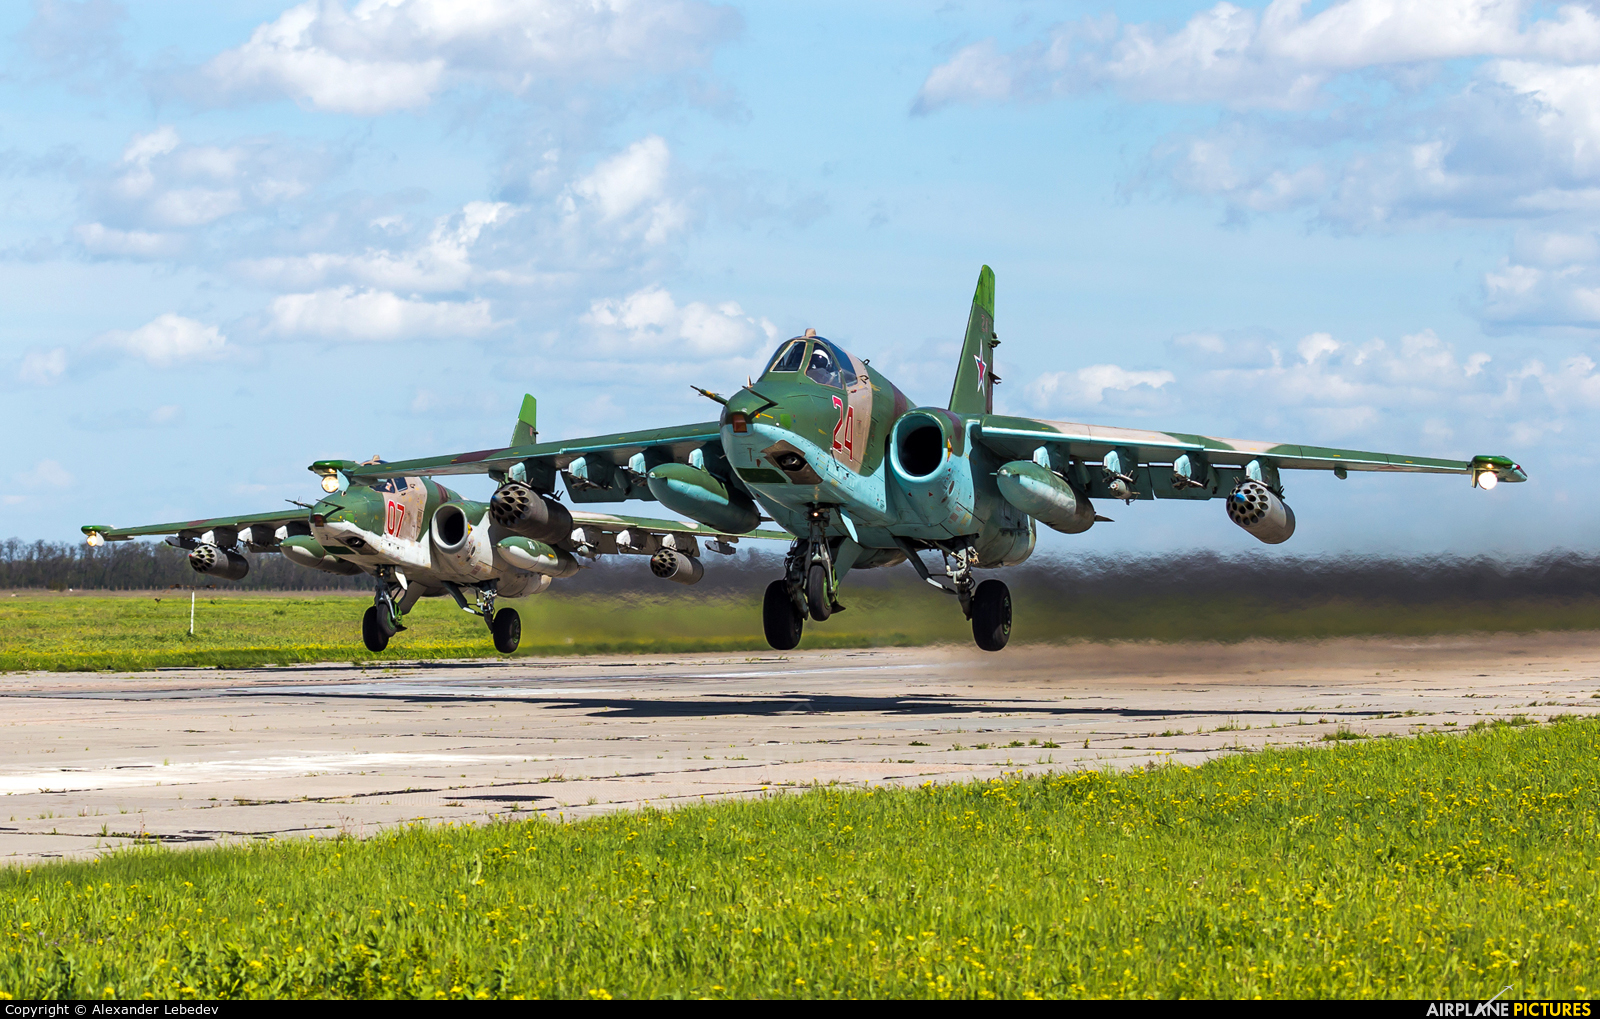 Russia - Air Force 24 aircraft at Primorsko-Akhtarsk